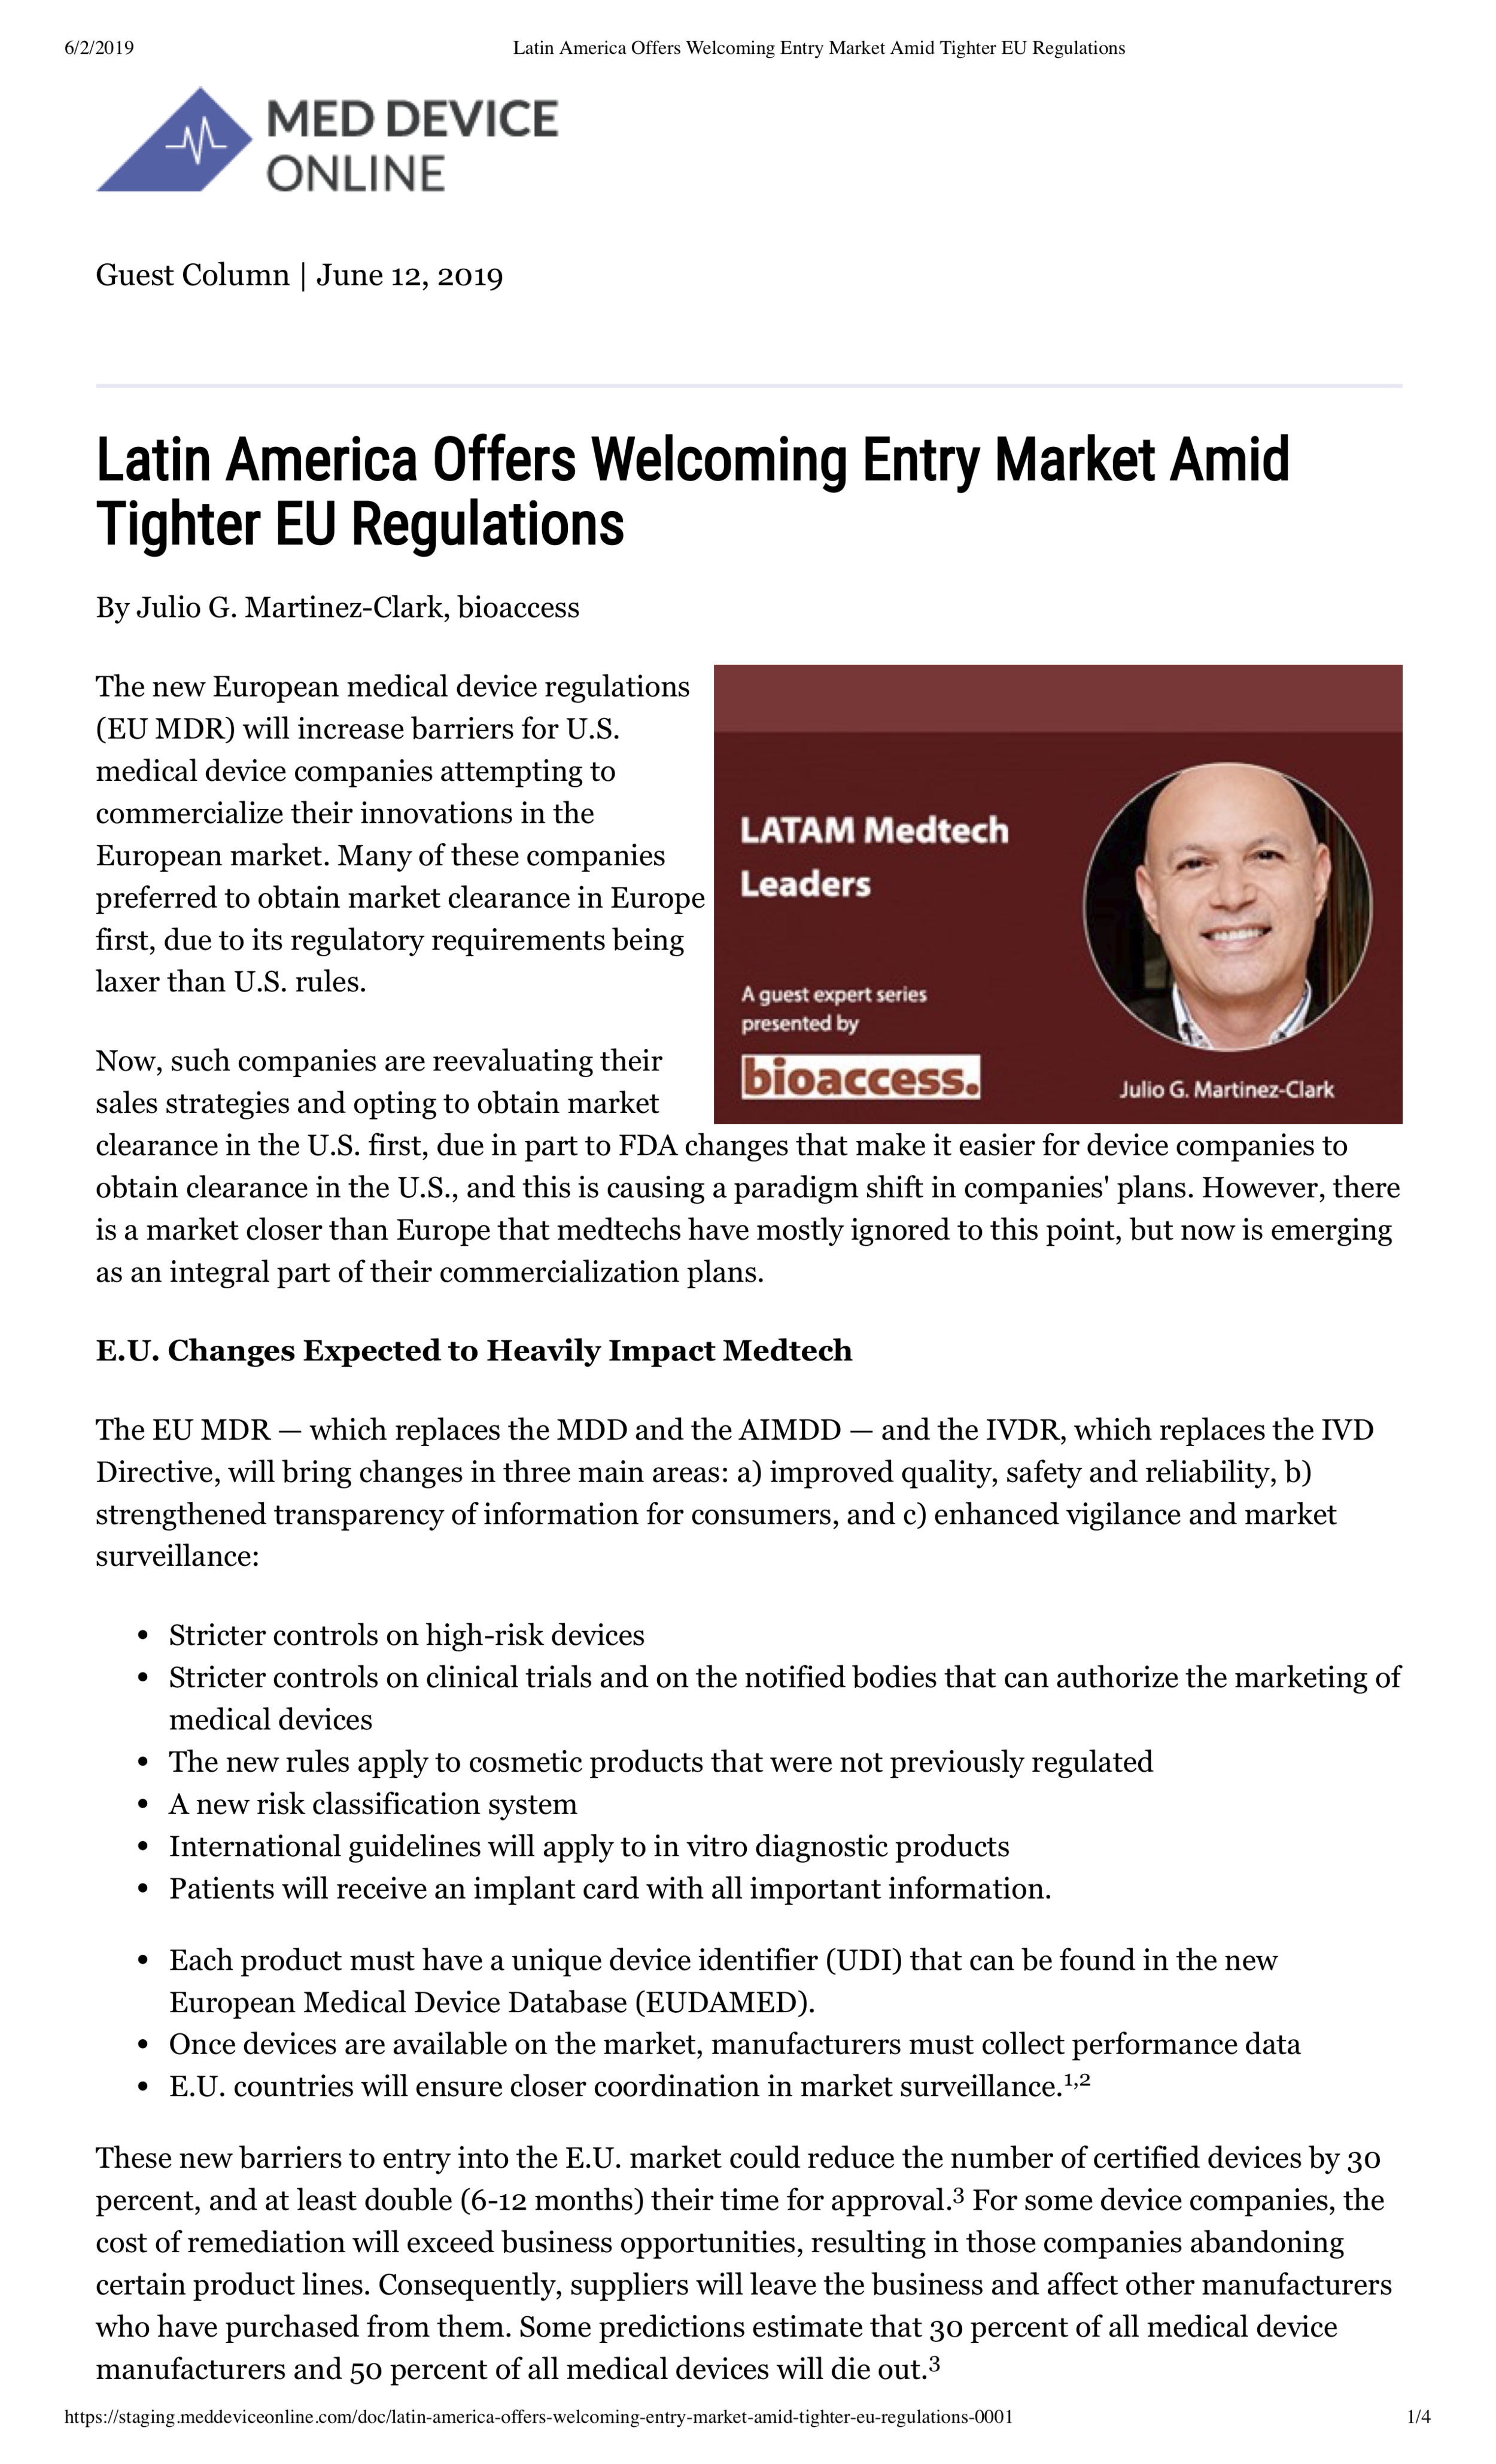 Med Device Online, June 12, 2019. Latin America Offers Welcoming Entry Market Amid Tighter EU Regulations.